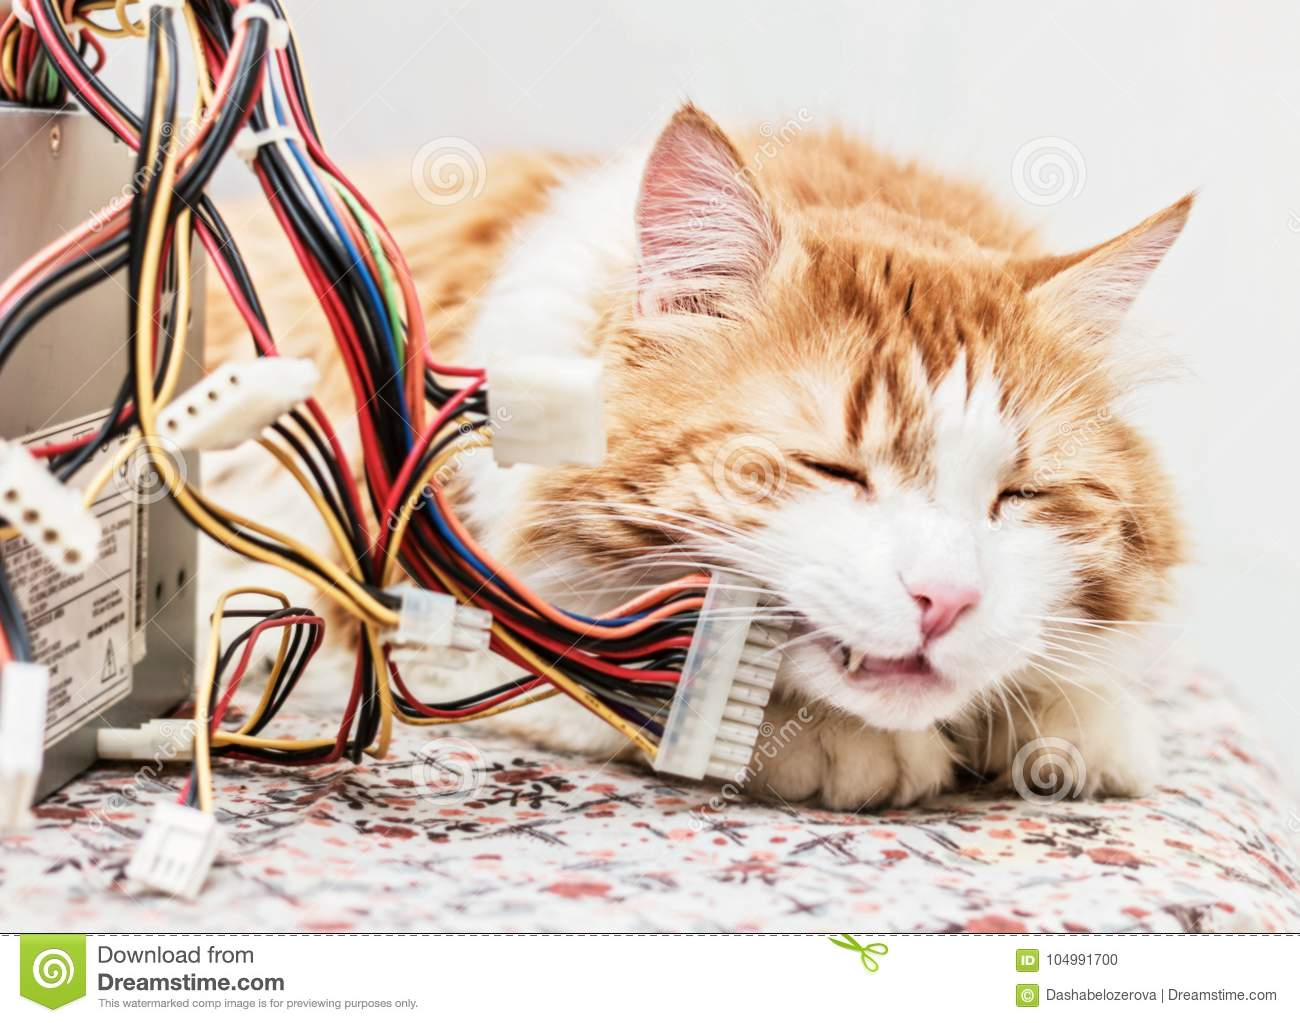 Red cat and computer wires stock photo. Image of adult - 104991700